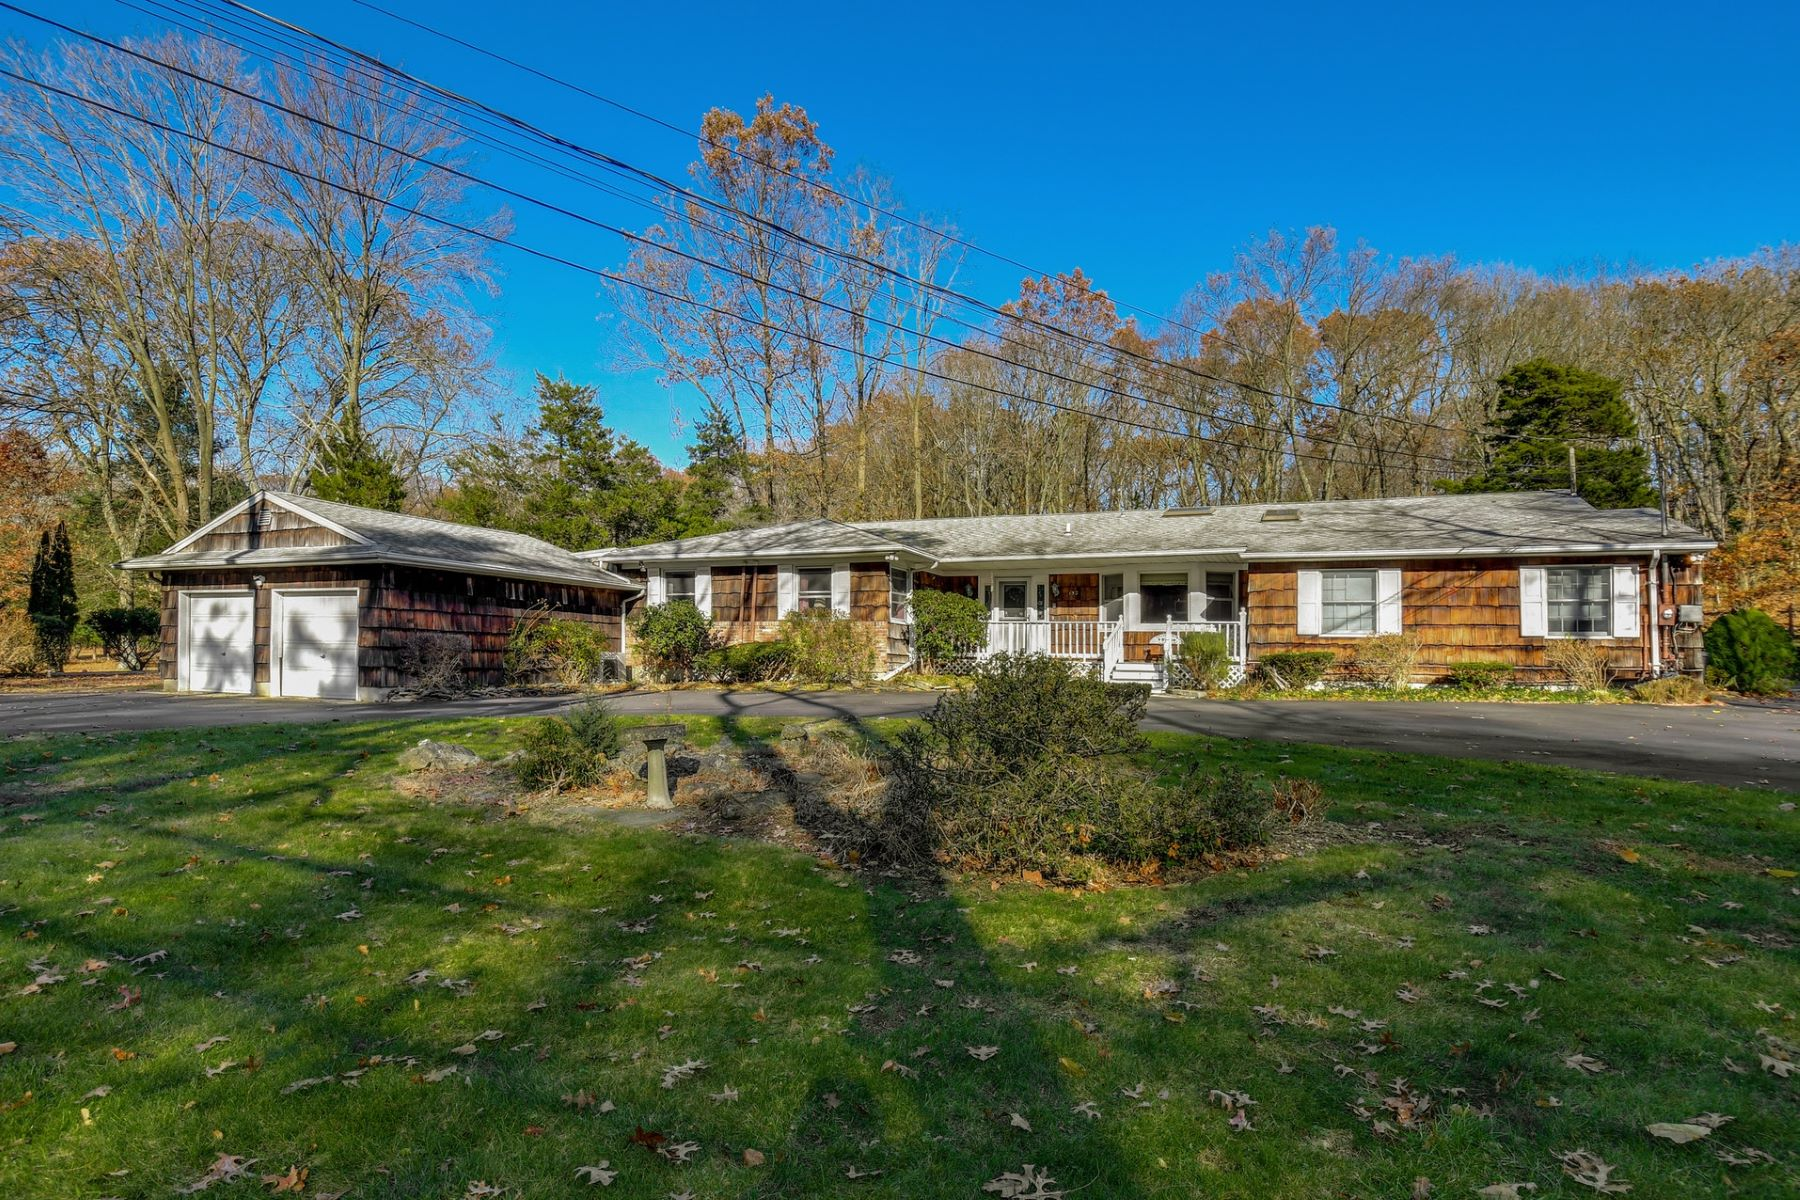 Single Family Homes for Sale at Northport 152 Waterside Rd Northport, New York 11768 United States